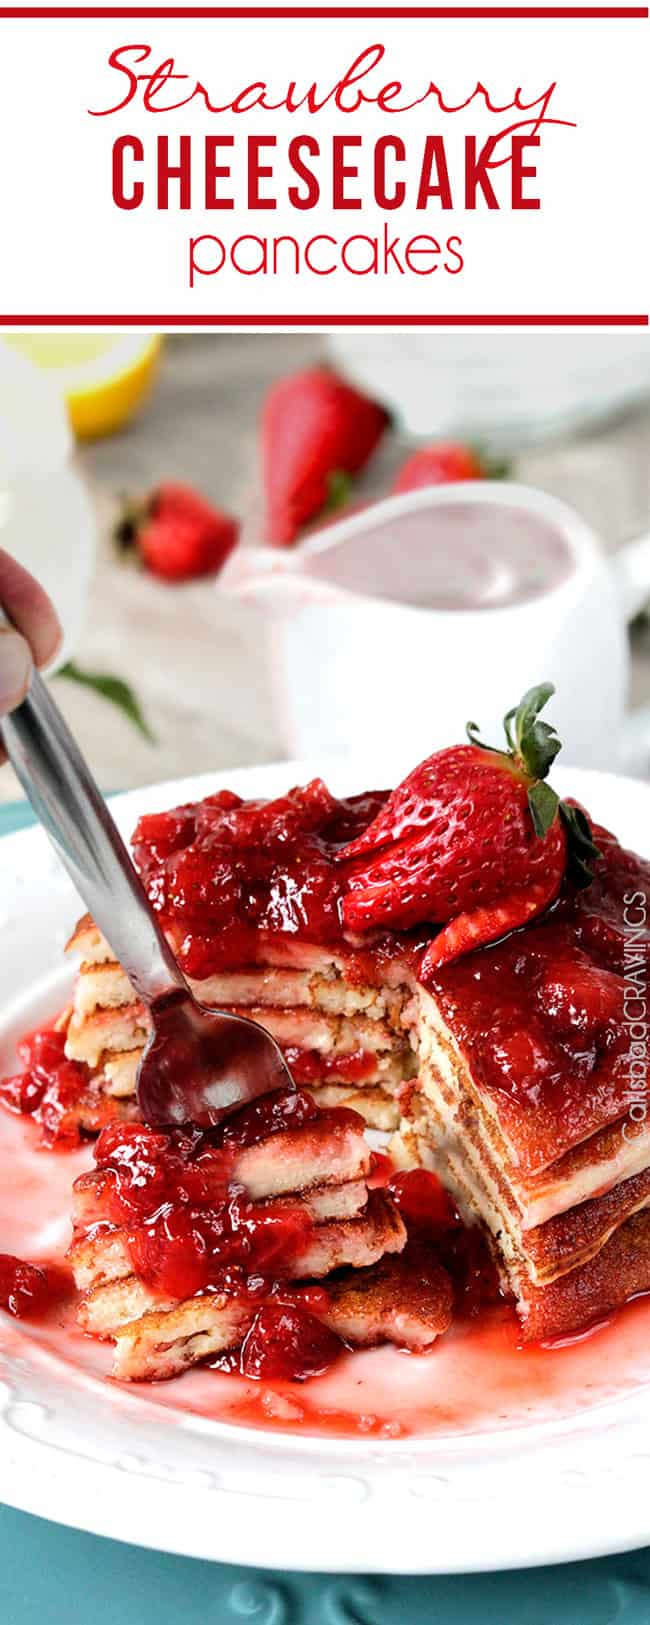 Strawberry Cheesecake Pancakes on a white plate.